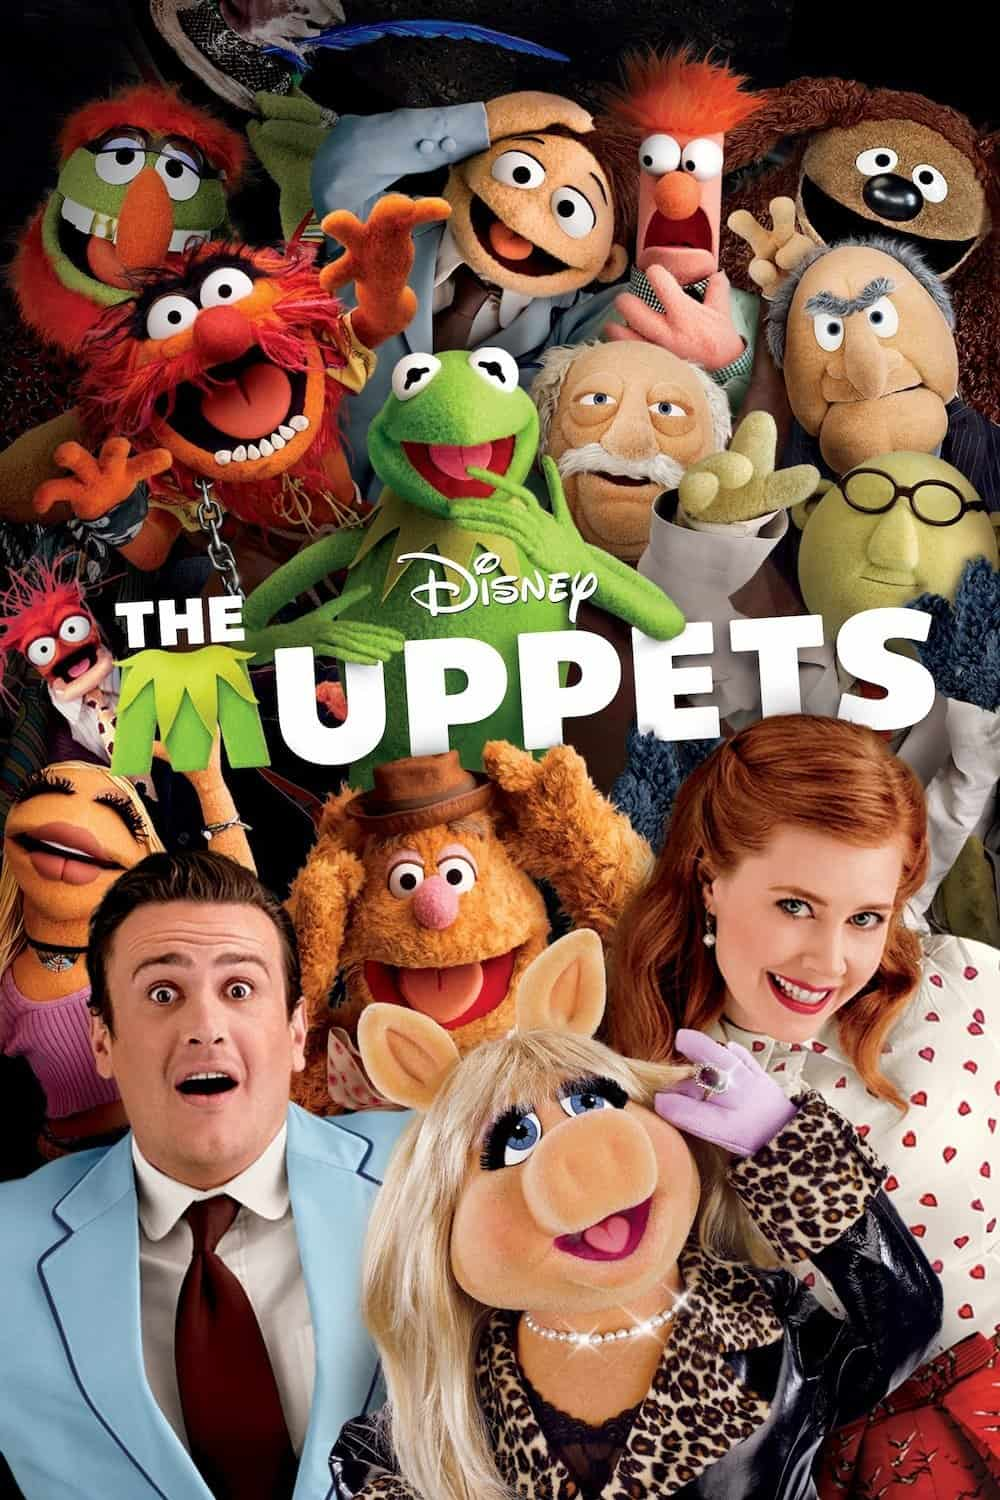 The Muppets, 2011